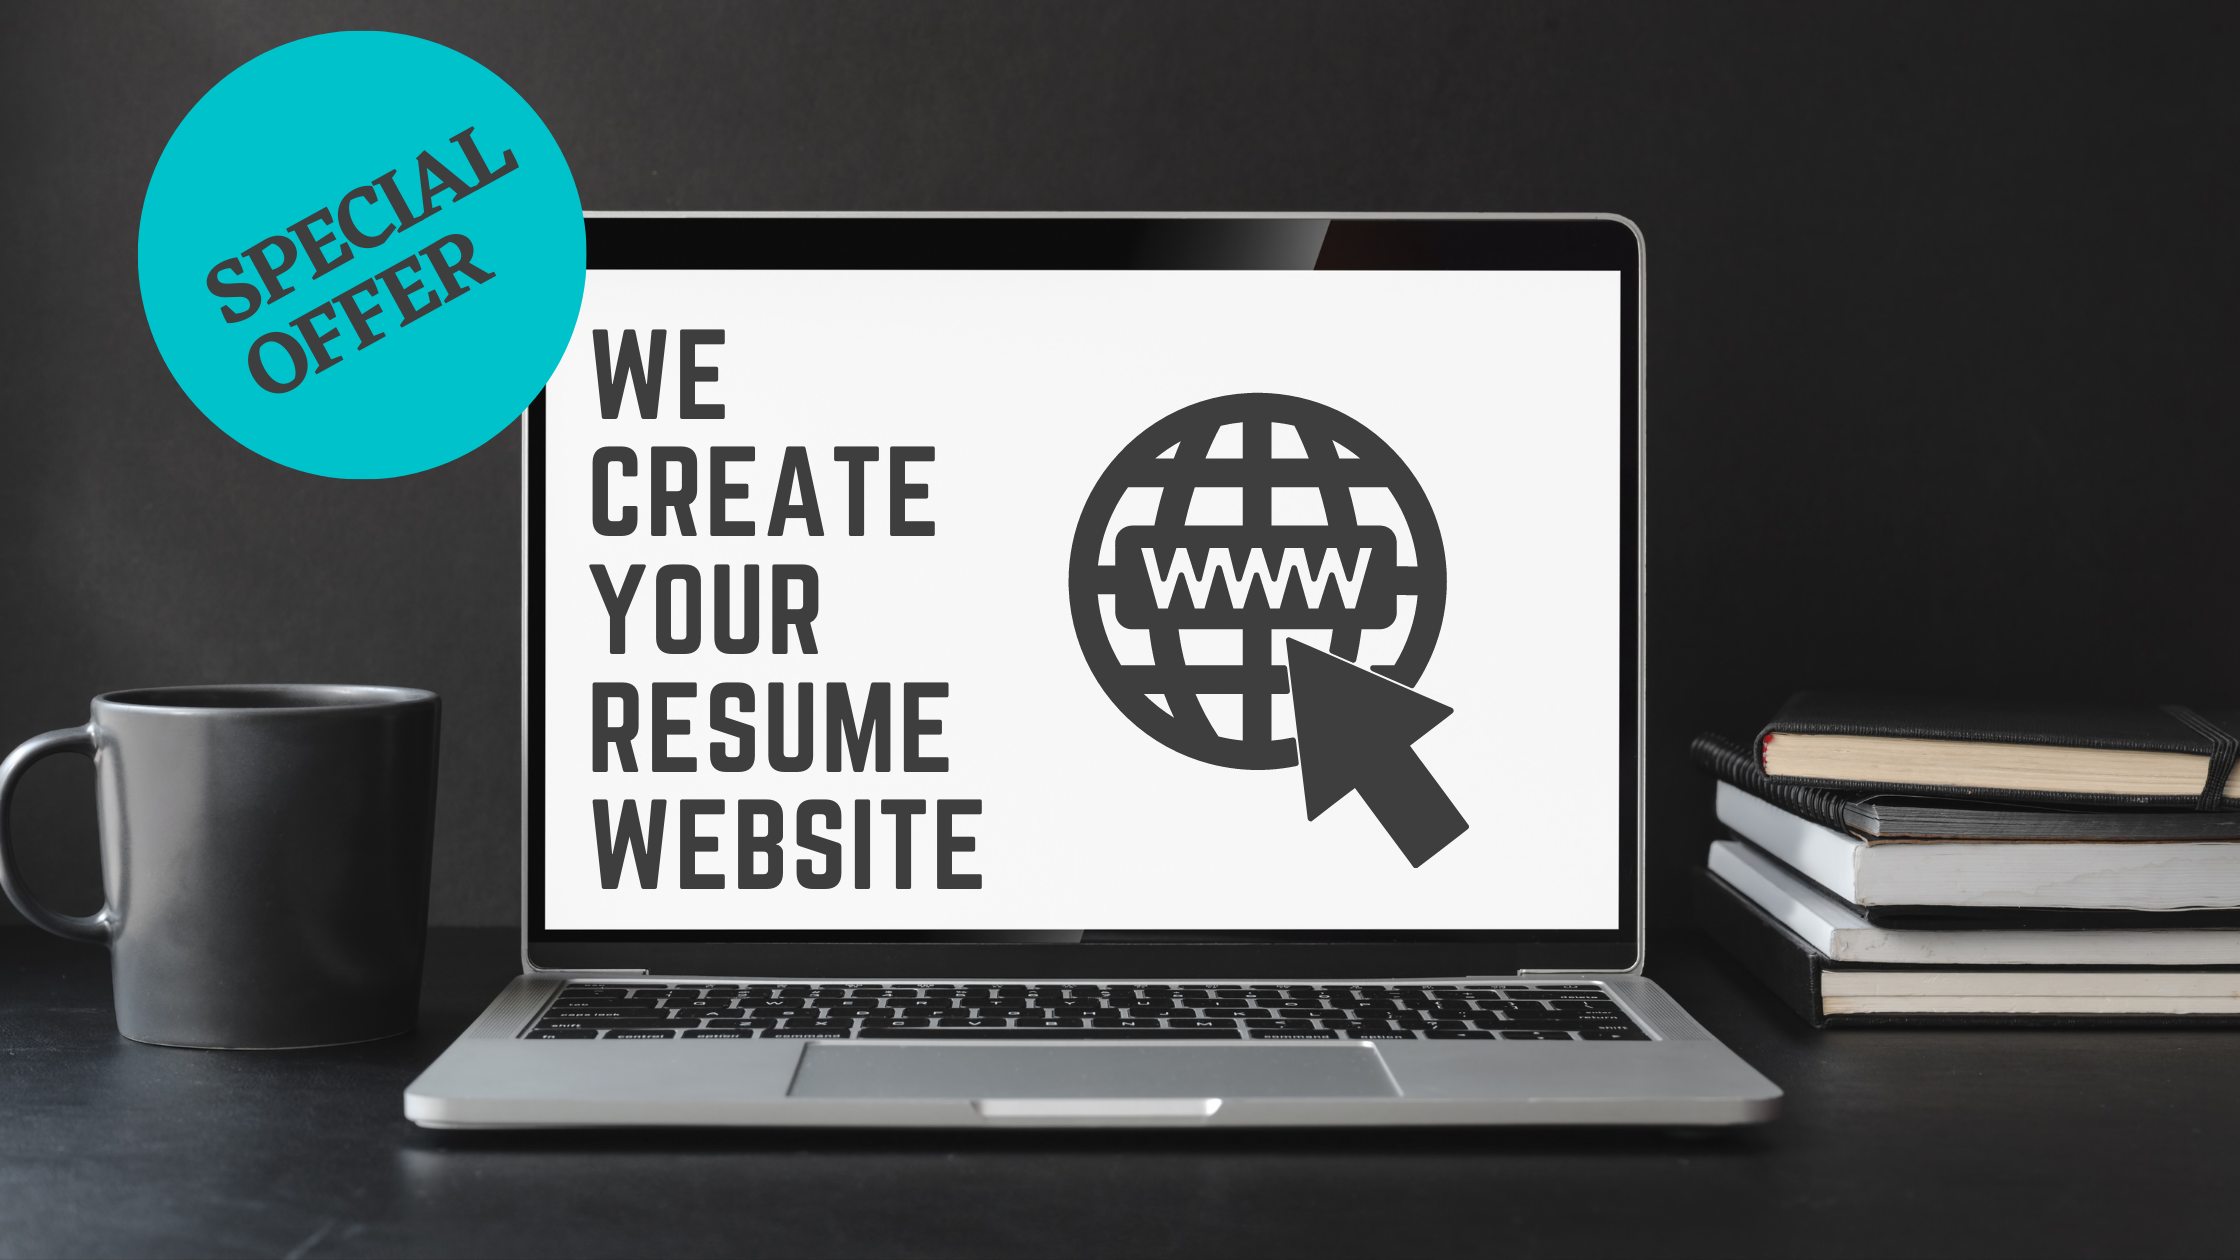 I will create top class resume website for you in 24hr